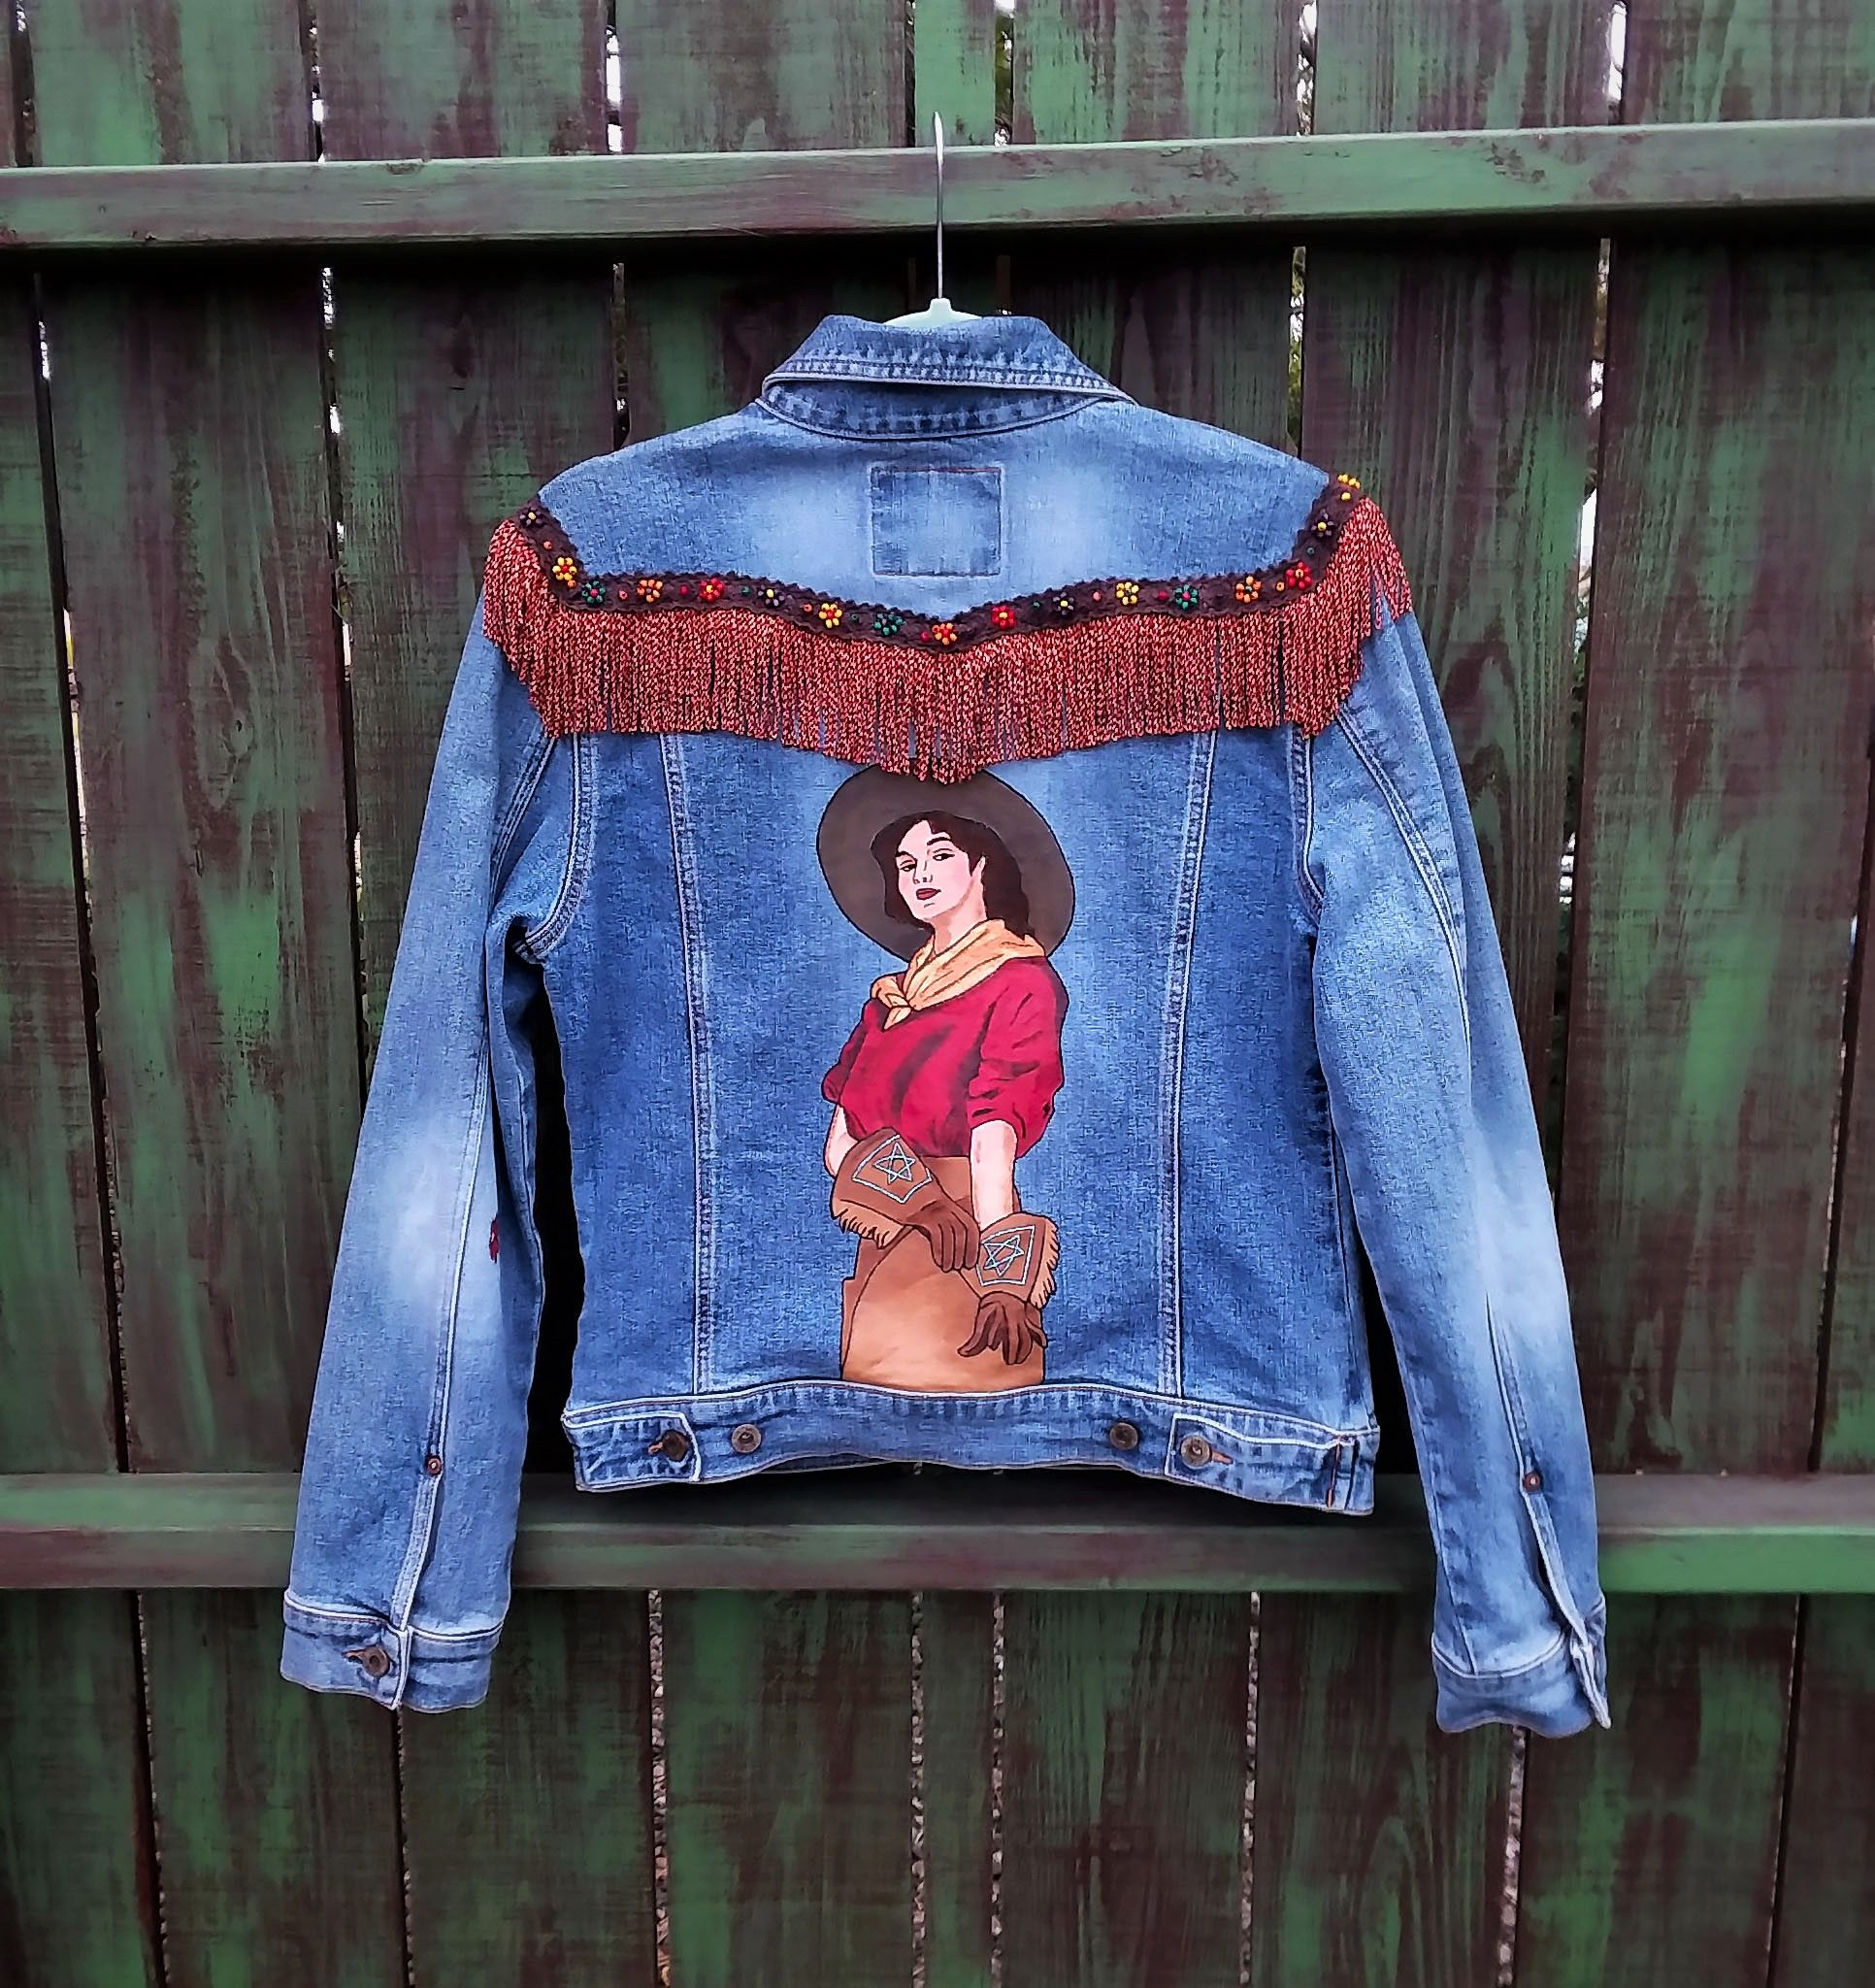 Hand Painted 1930 S Western Cowgirl Denim Jean Jacket With Fringe By Bleudoor On Instagram Embellished Jacket Jackets Painted Denim [ 2048 x 1932 Pixel ]